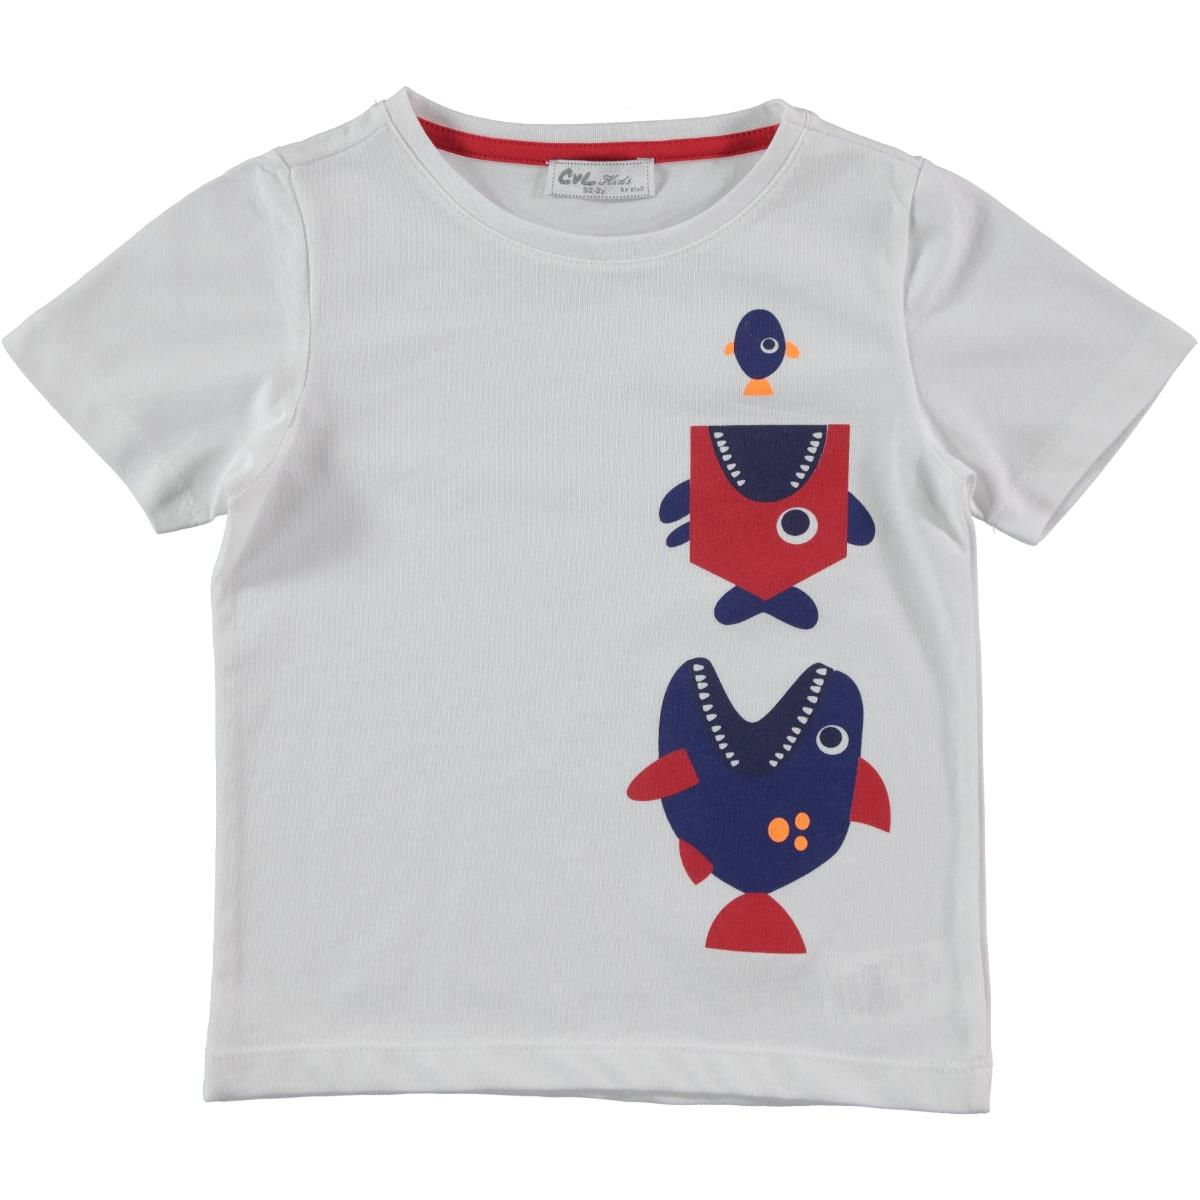 Cvl Boy T-Shirt Red Age 2-5